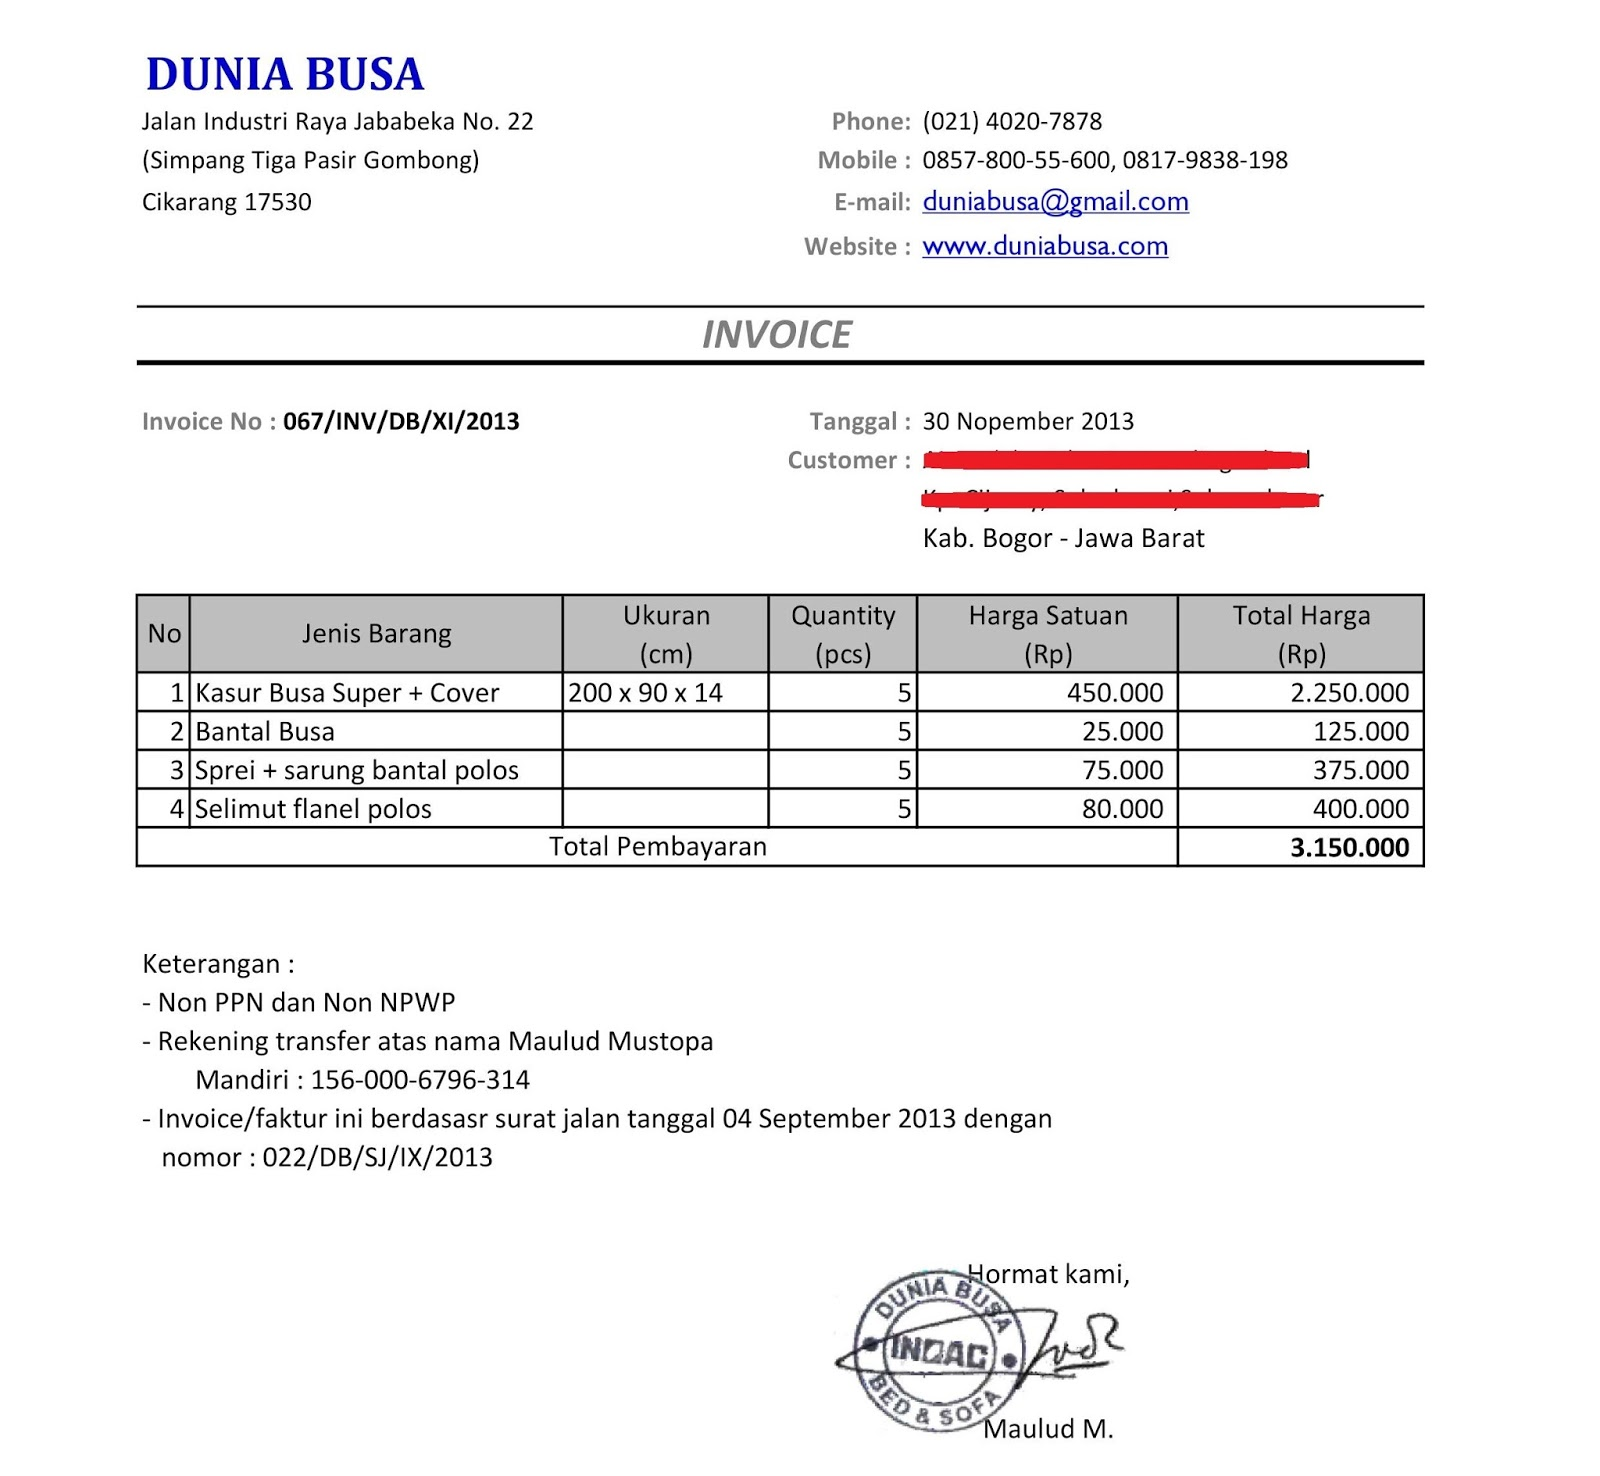 Darkfaderus  Inspiring Free Invoice Online  Create Invoice Online  Invoice Template  With Lovely Contoh Format Invoice Atau Surat Tagihan  Brankas Arsip  Free Invoice Online With Delectable Editable Invoice Also Honda Odyssey Invoice Price In Addition Edi Invoices And Paypal Invoice Template As Well As Invoice Programs For Small Business Additionally Vendor Invoice Management From Sklepco With Darkfaderus  Lovely Free Invoice Online  Create Invoice Online  Invoice Template  With Delectable Contoh Format Invoice Atau Surat Tagihan  Brankas Arsip  Free Invoice Online And Inspiring Editable Invoice Also Honda Odyssey Invoice Price In Addition Edi Invoices From Sklepco